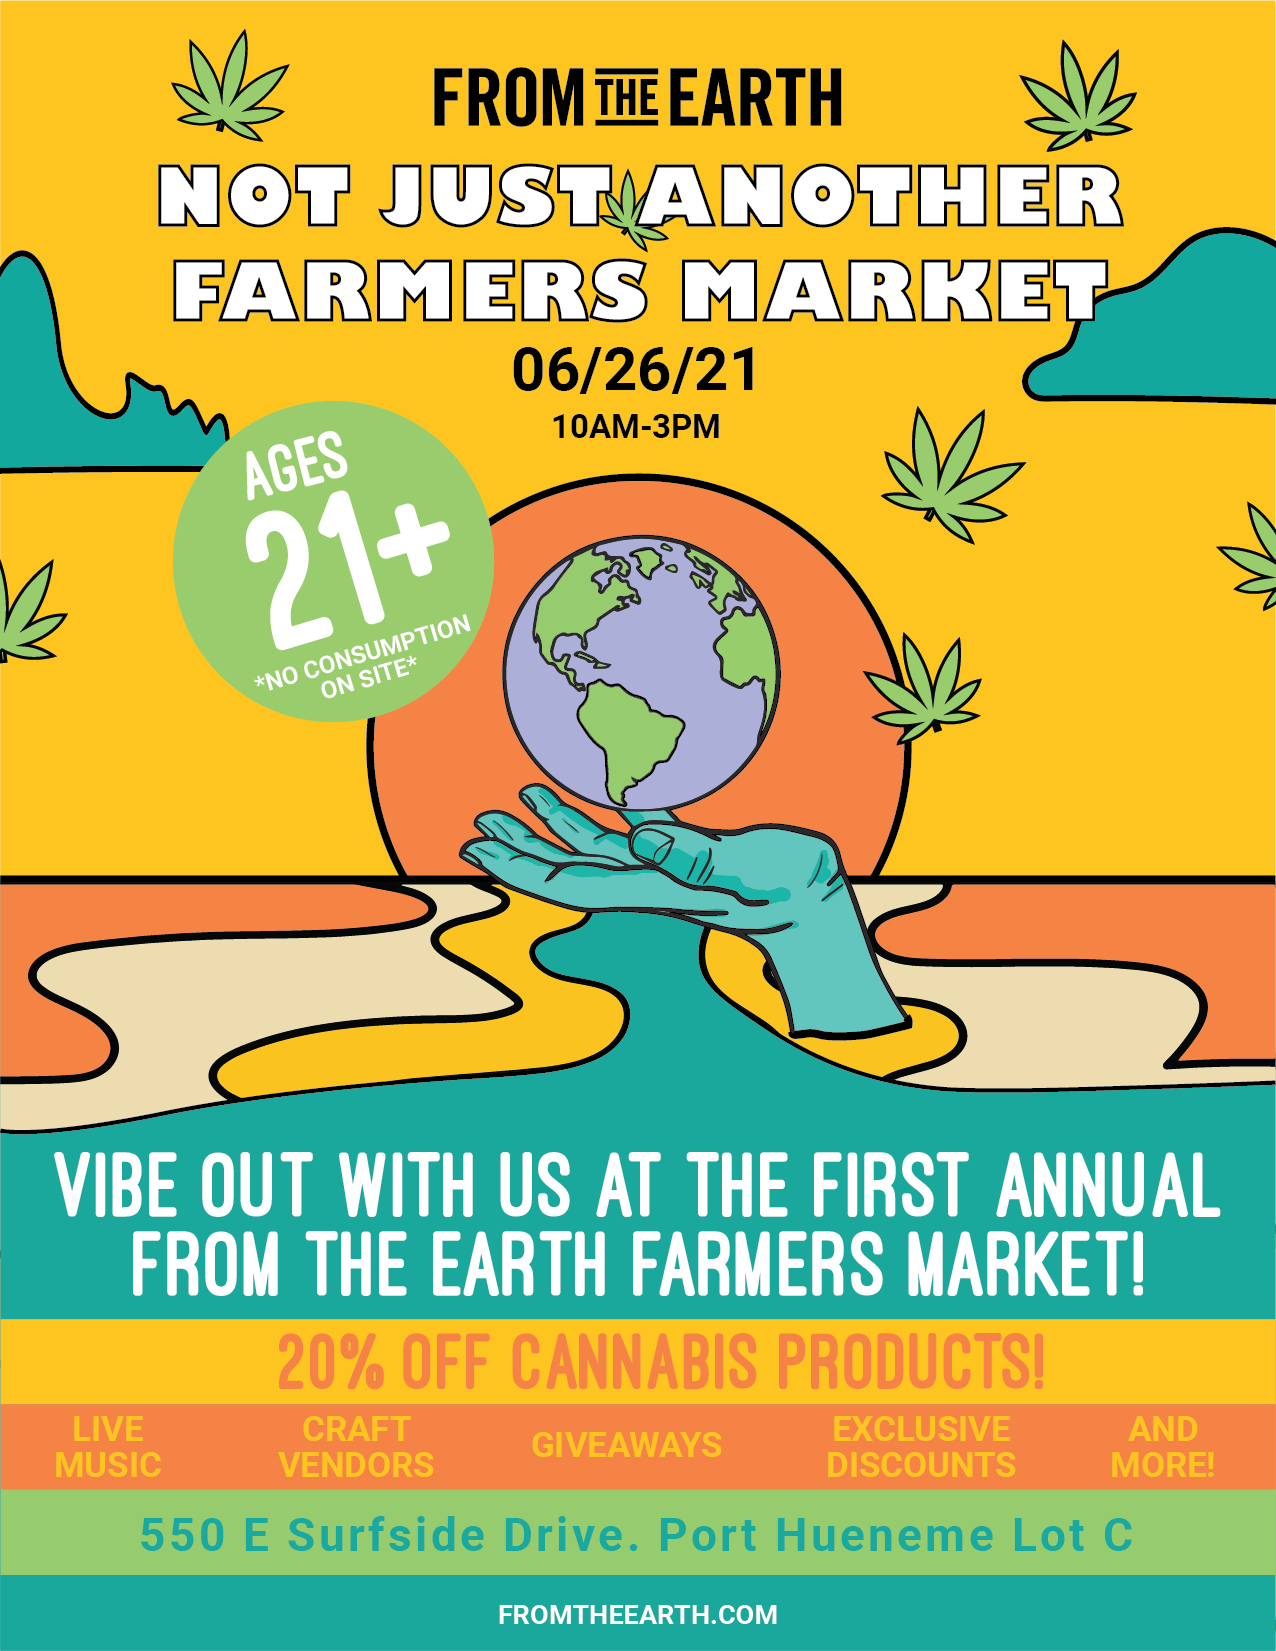 Not Just Another Farmer's Market